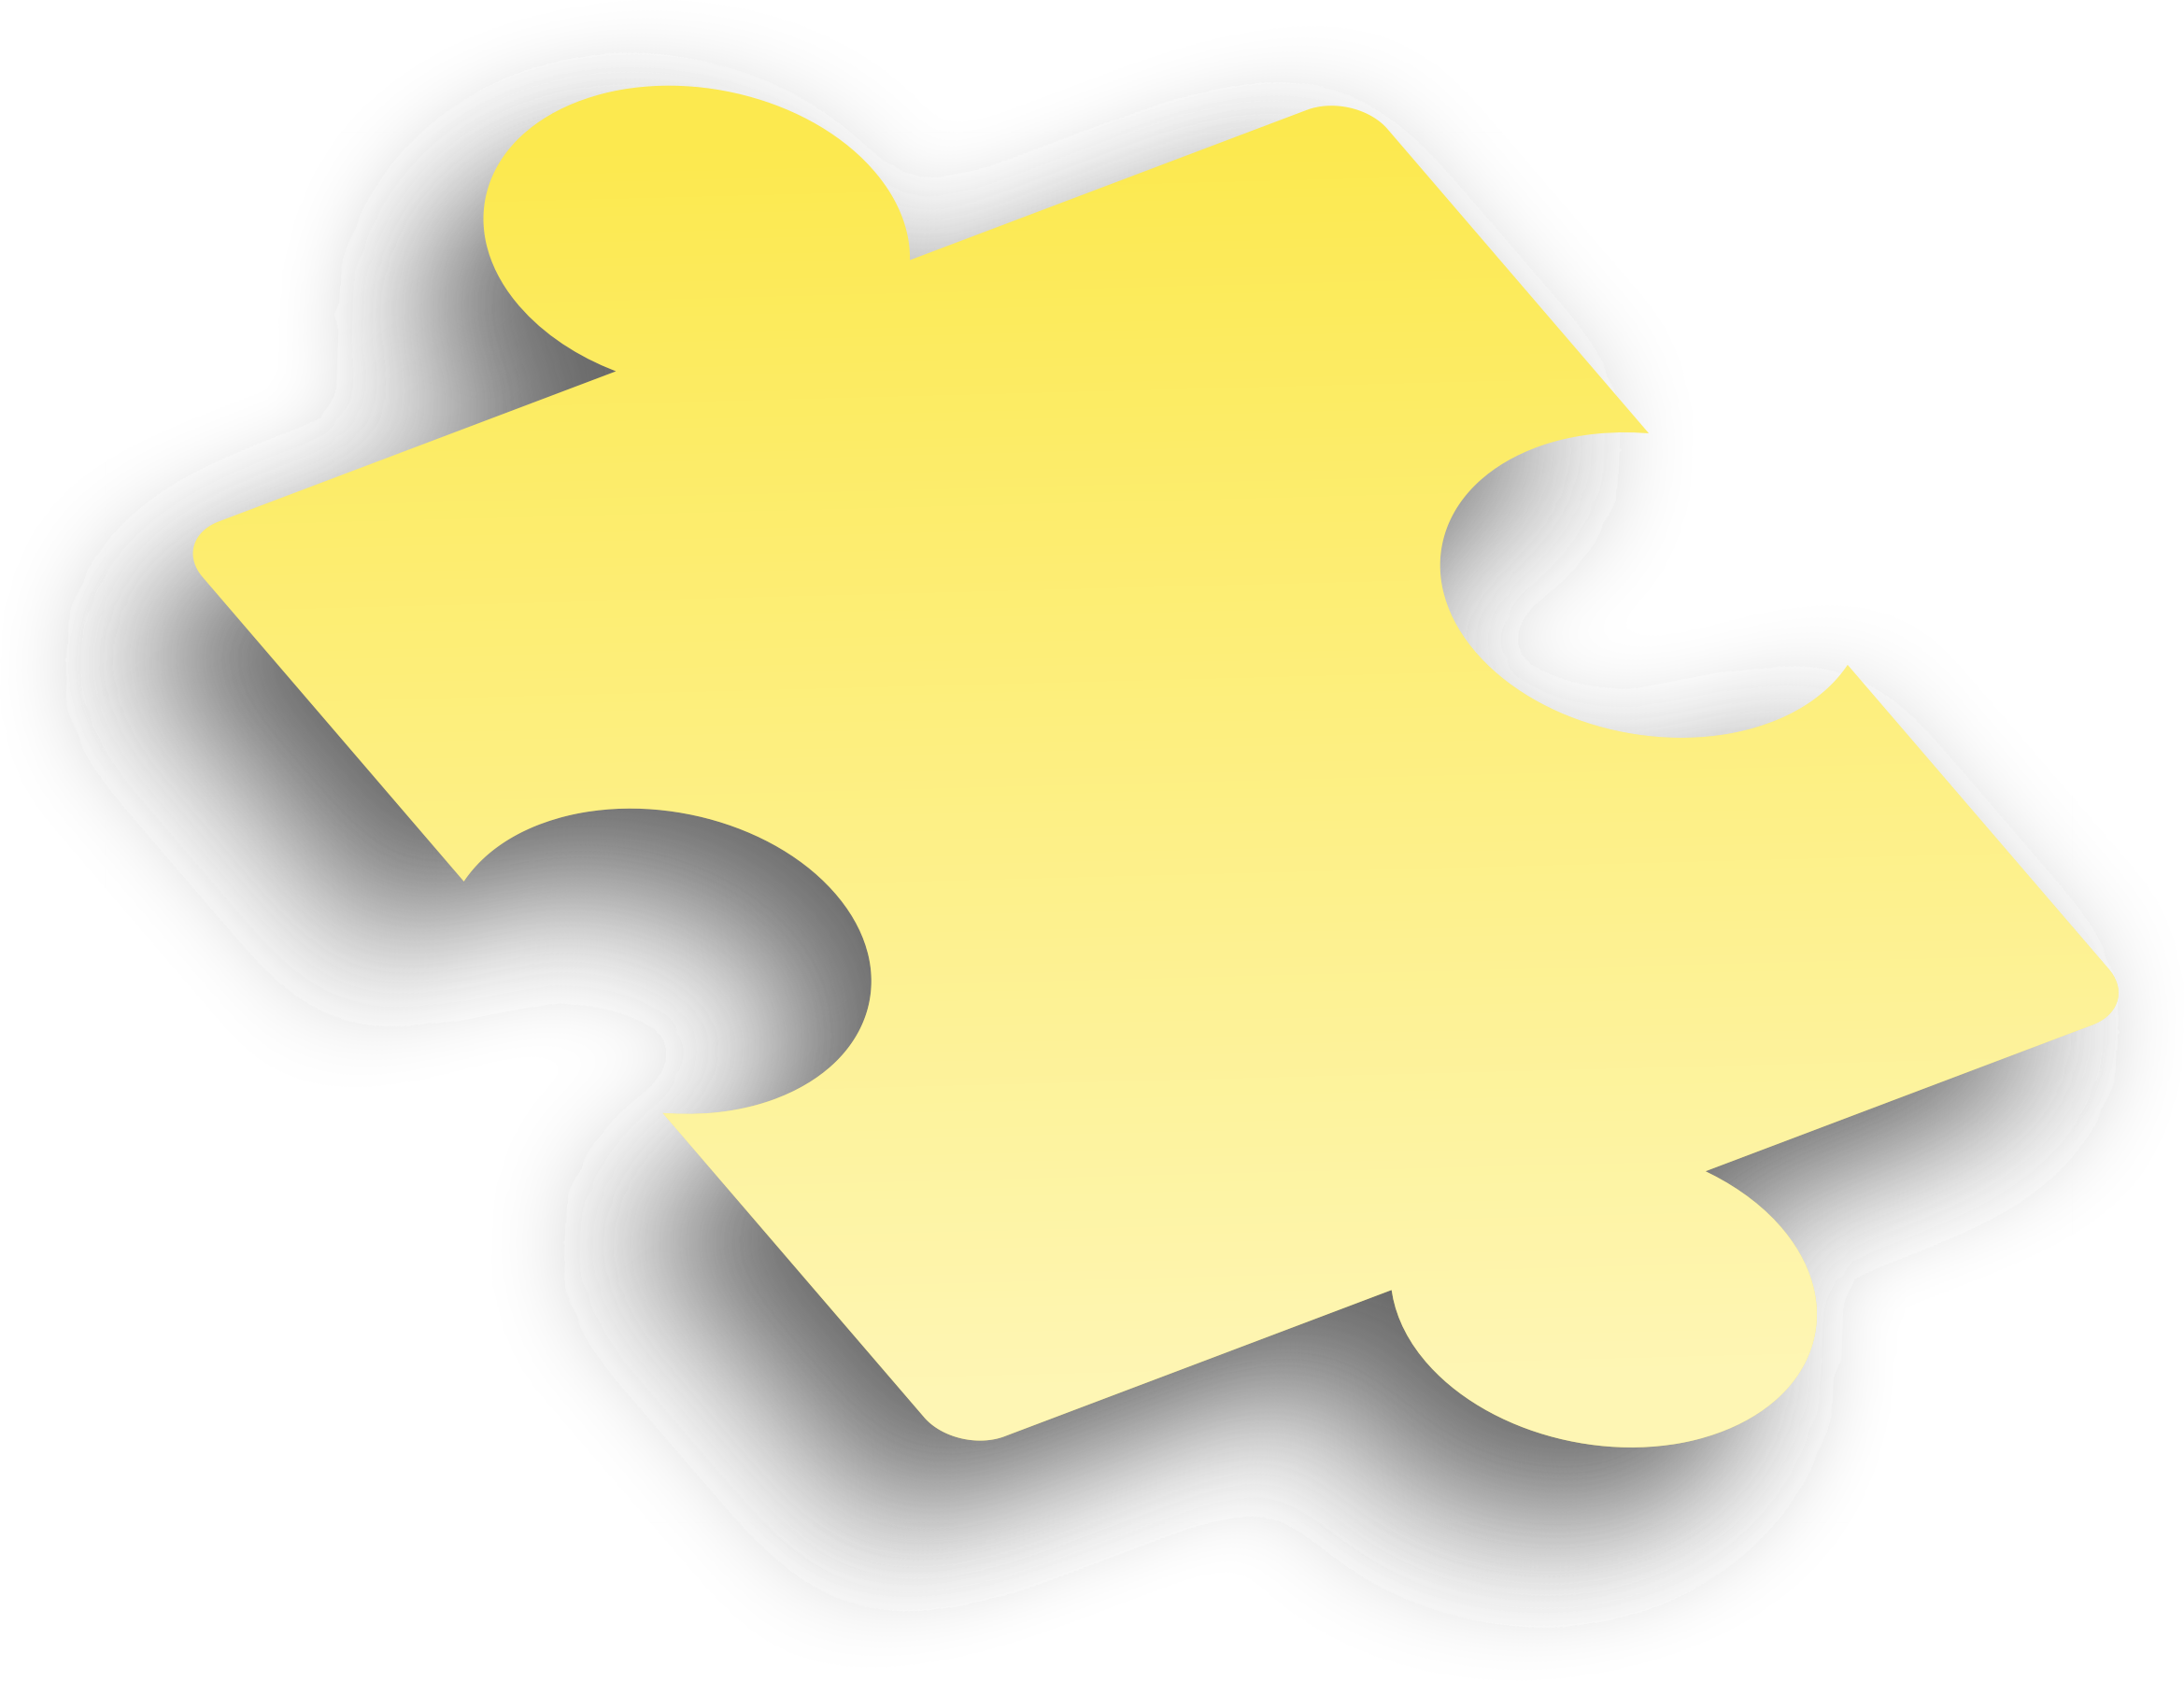 Playdough clipart puzzle. Piece yellow big image